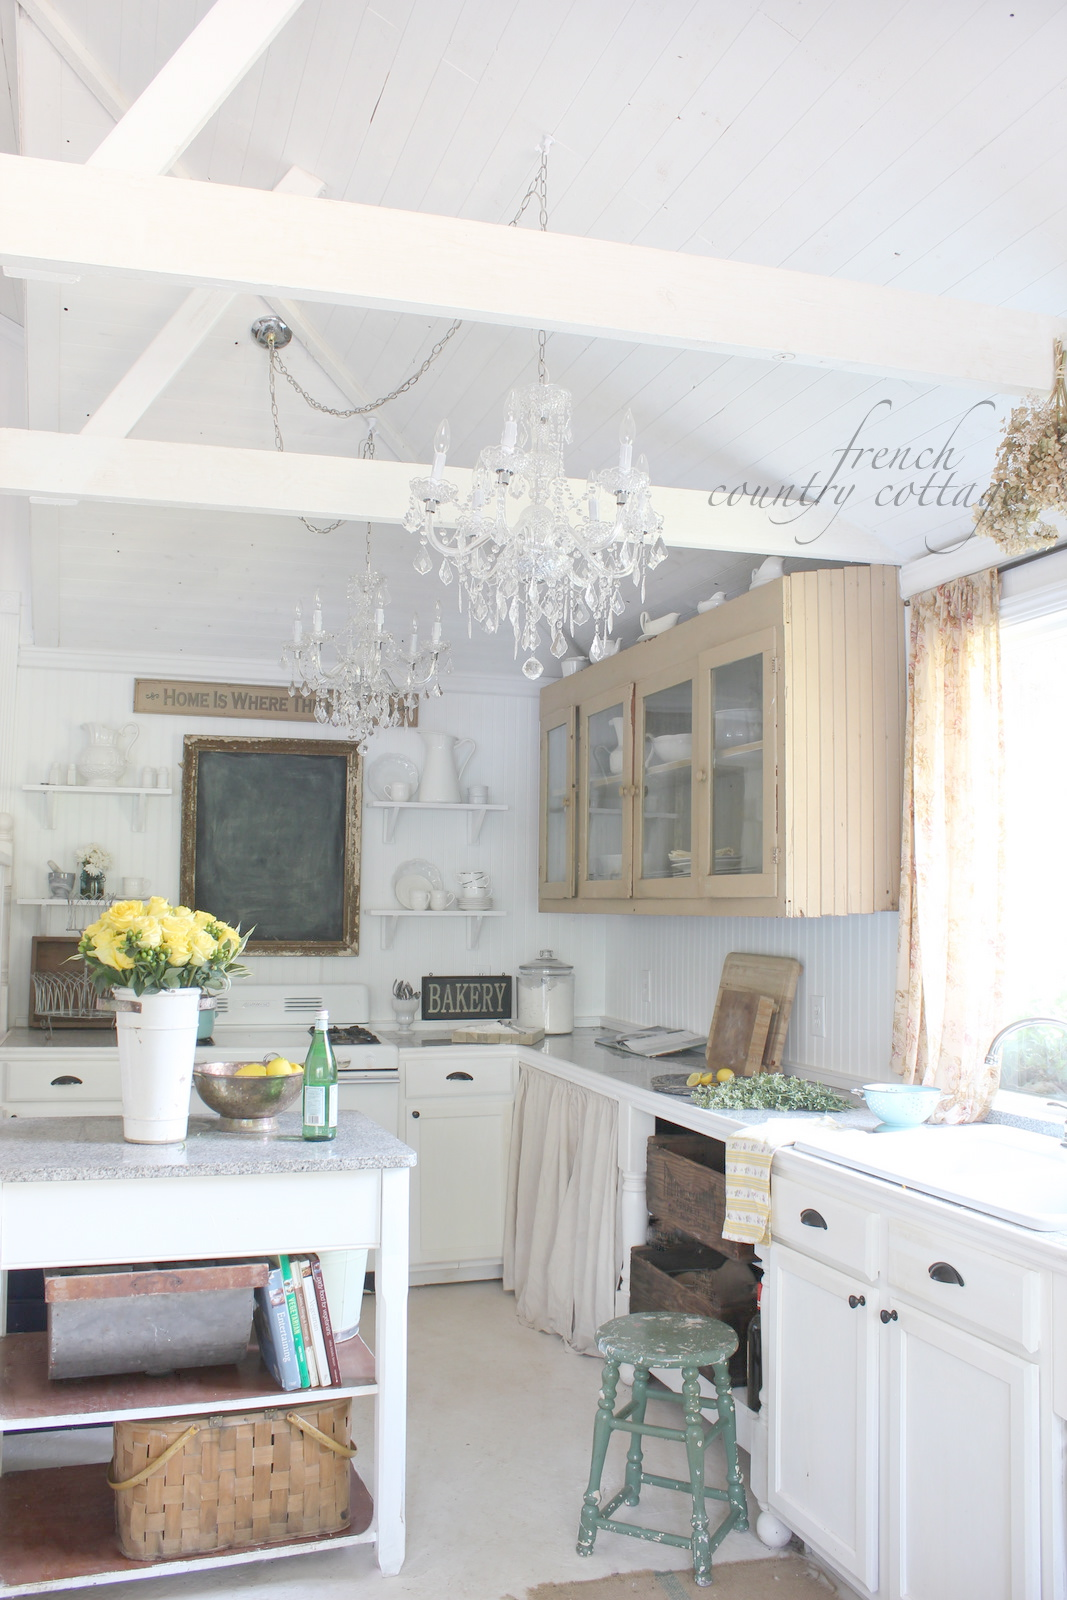 Cottage kitchen tour french country cottage for French country cottages